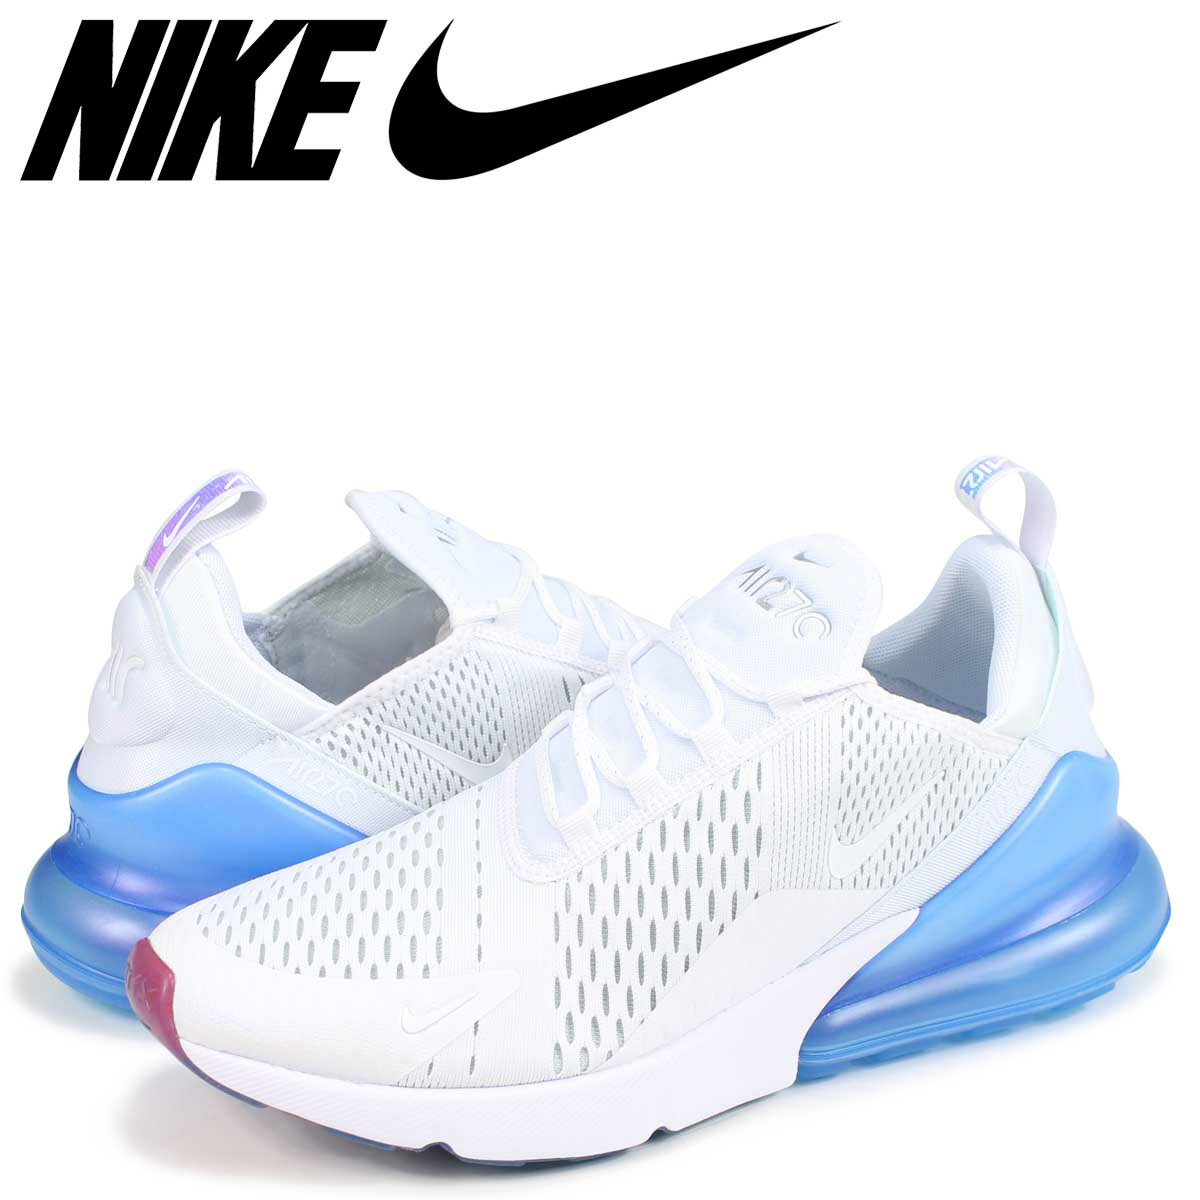 sneakers for cheap 32e0a 421a9 Product Information